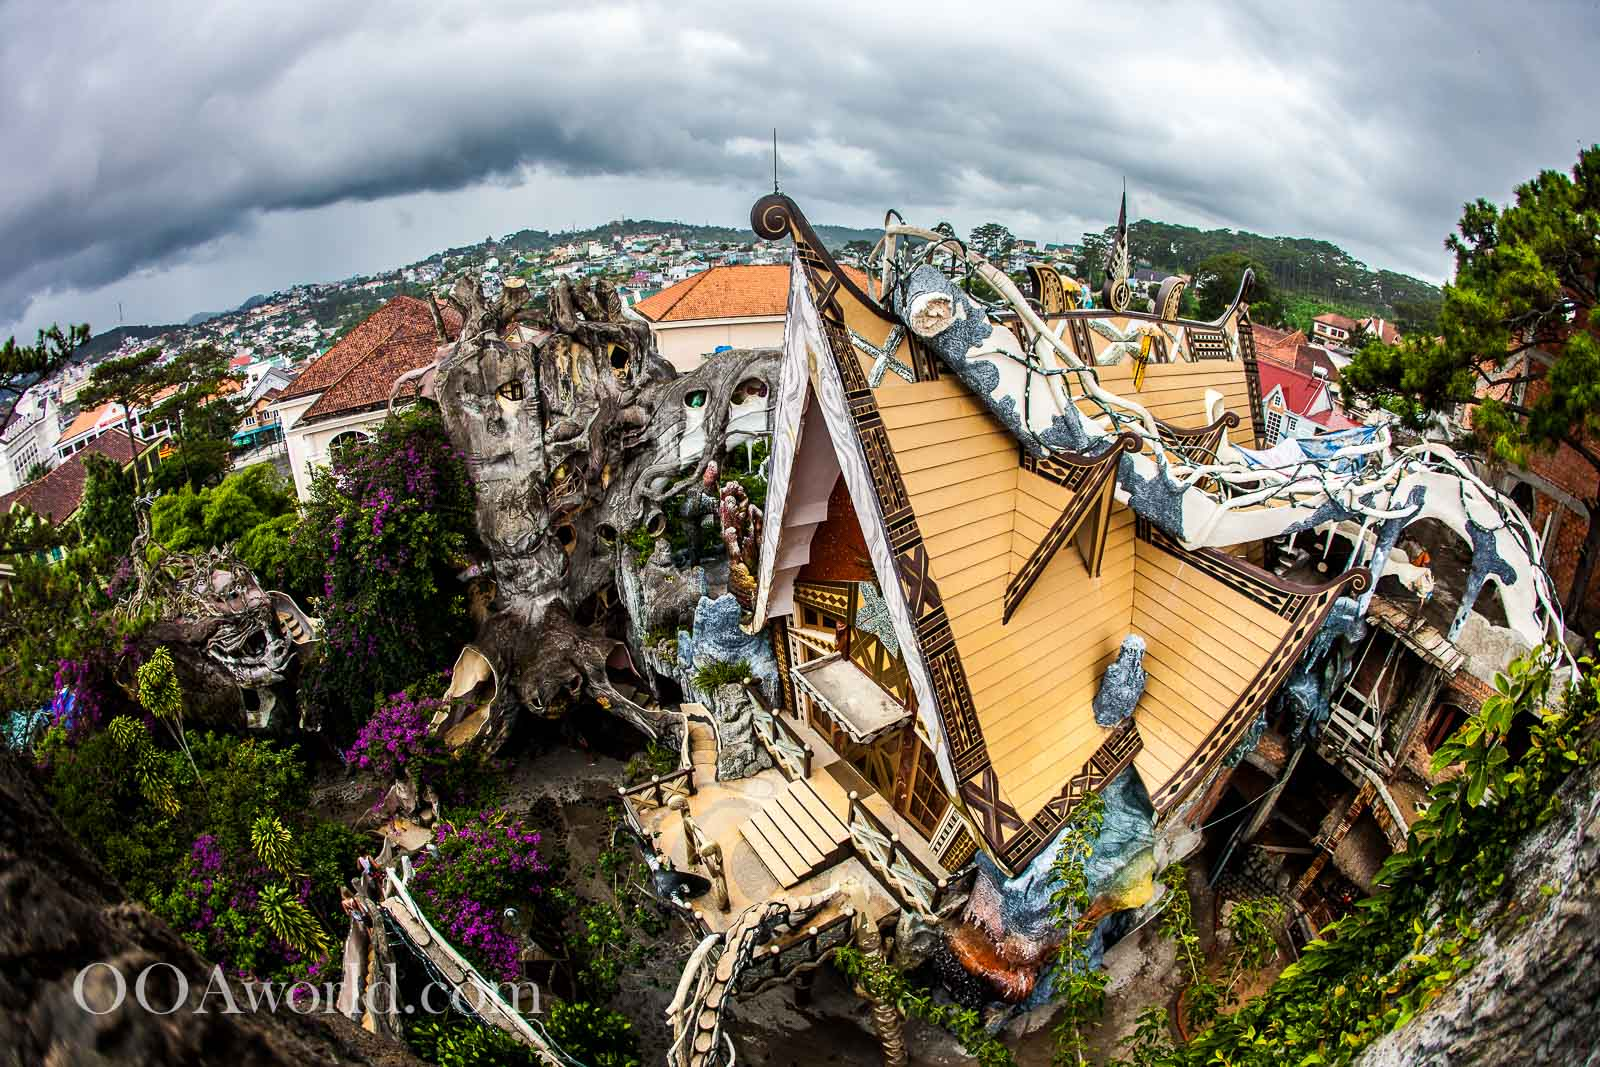 Dalat Crazy House Vietnam Photo Ooaworld